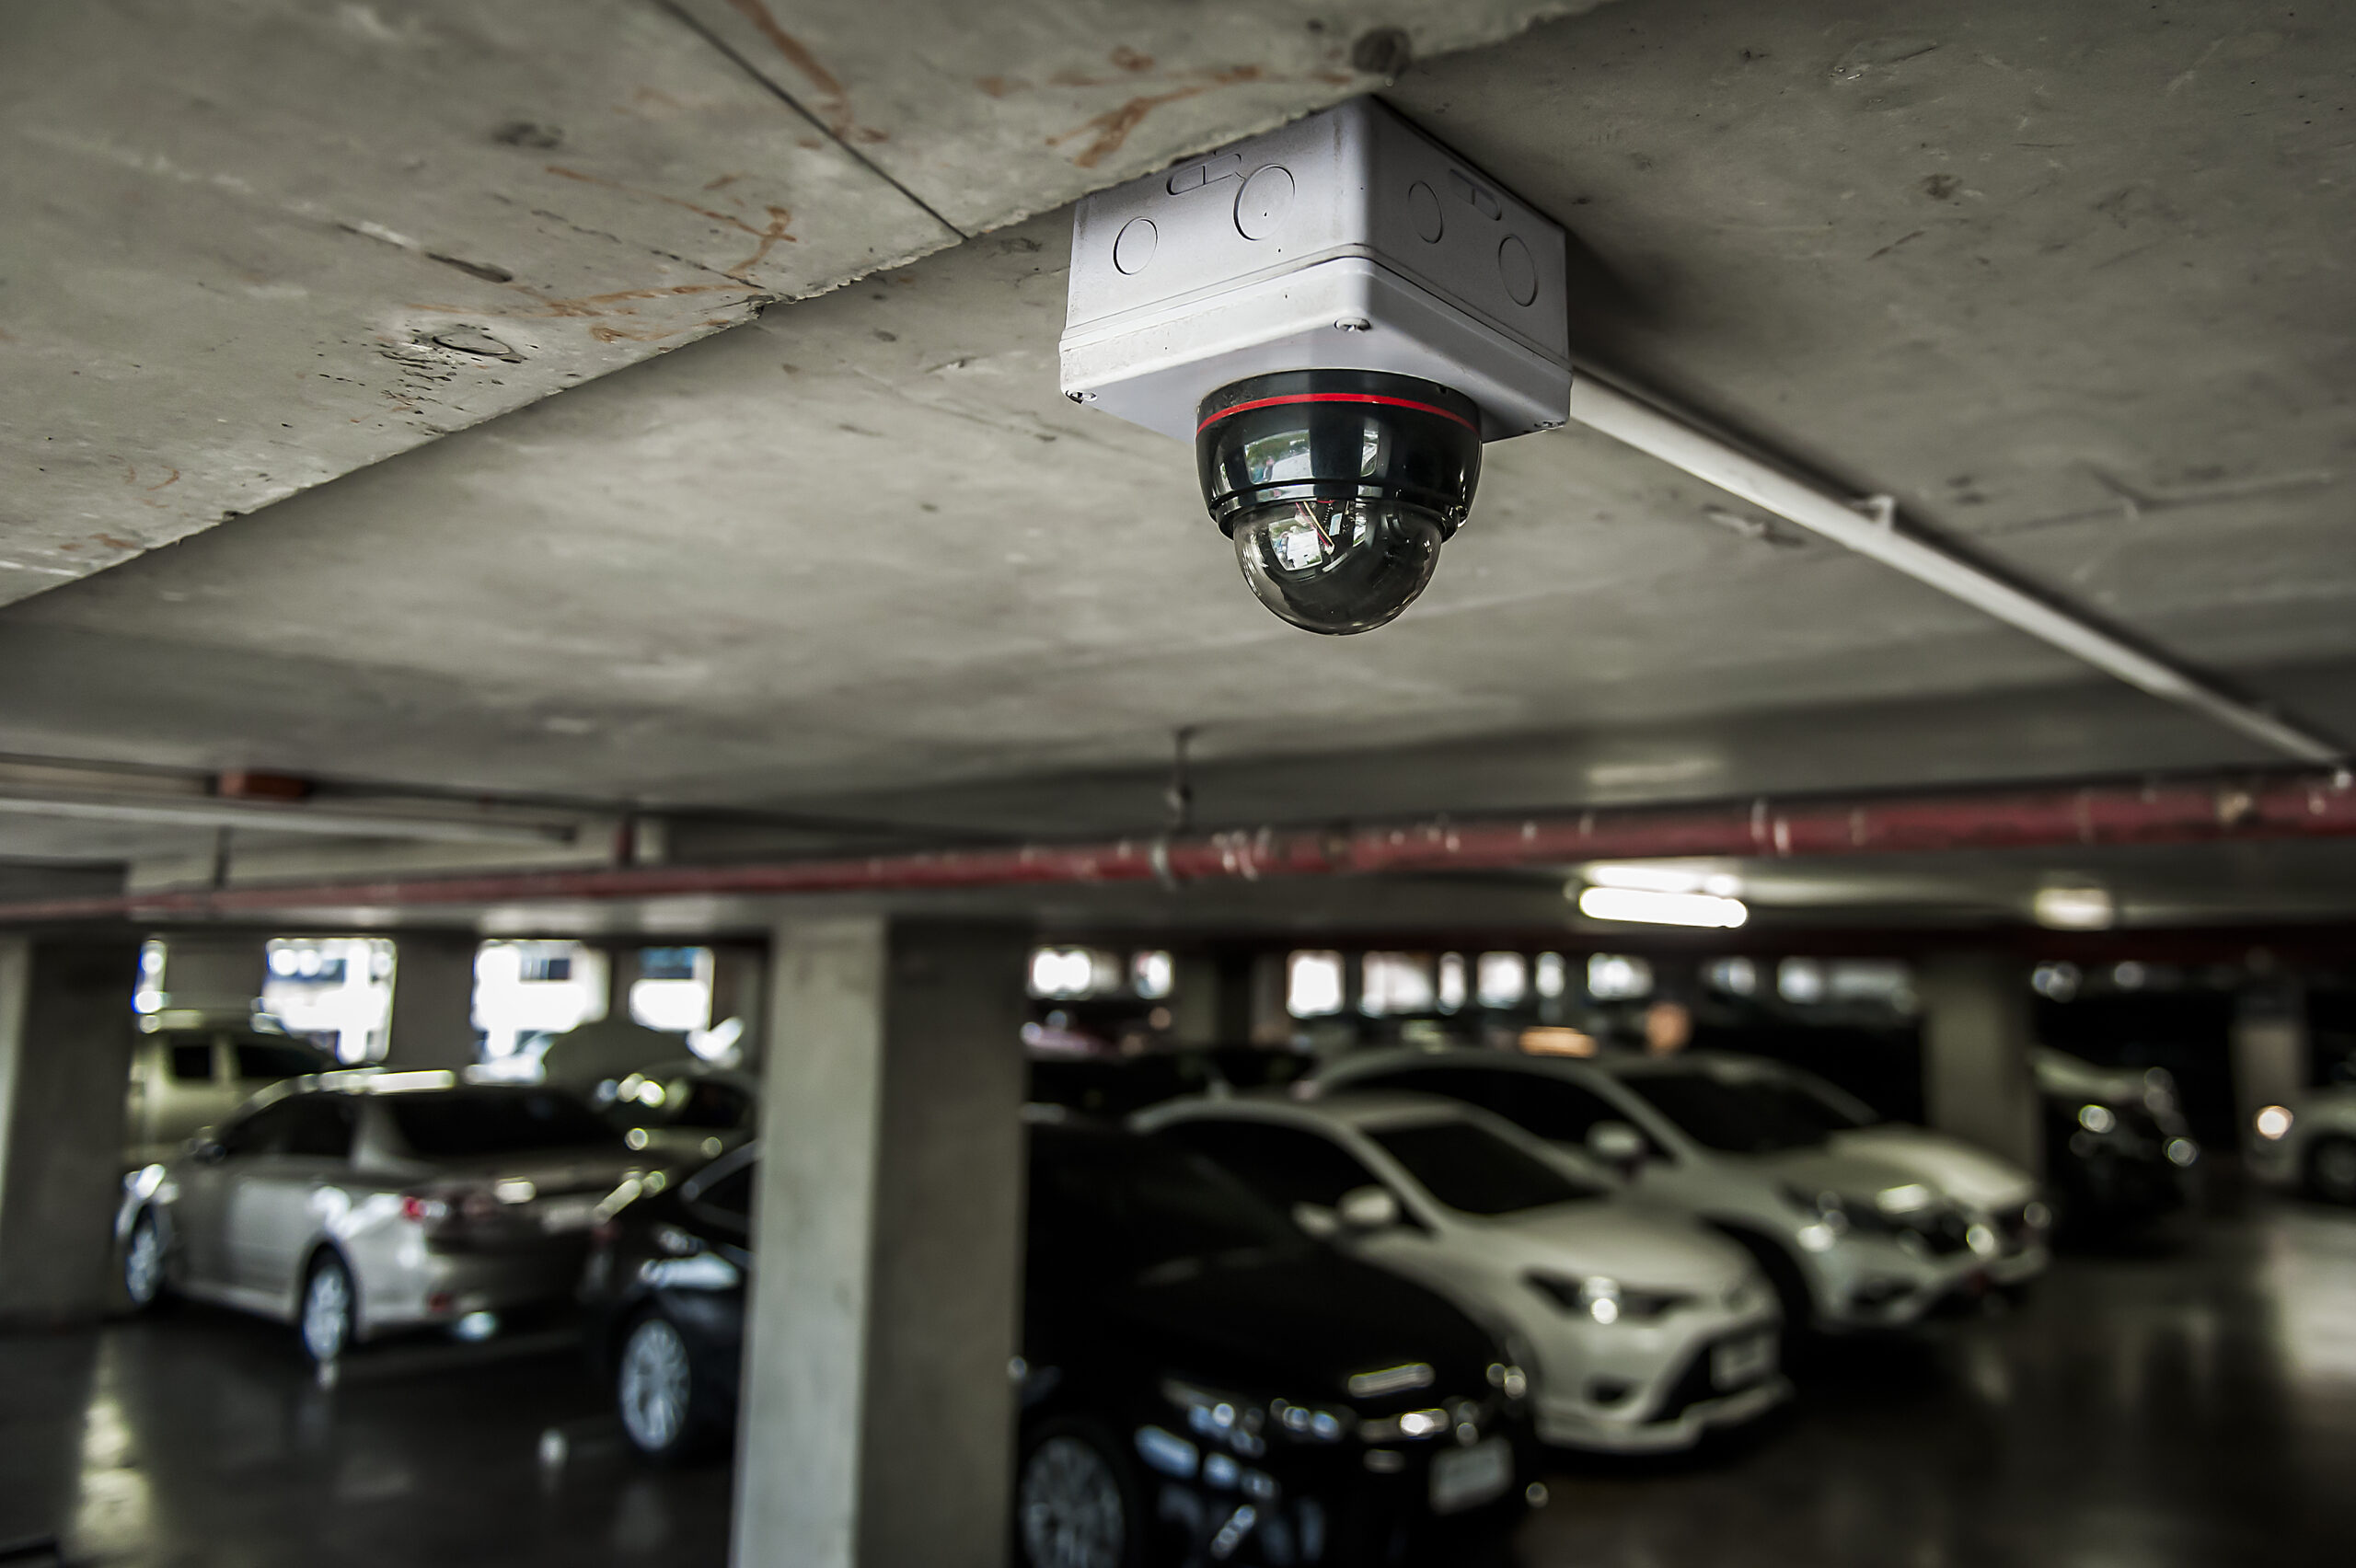 CCTV Parking - Downtown Electrical